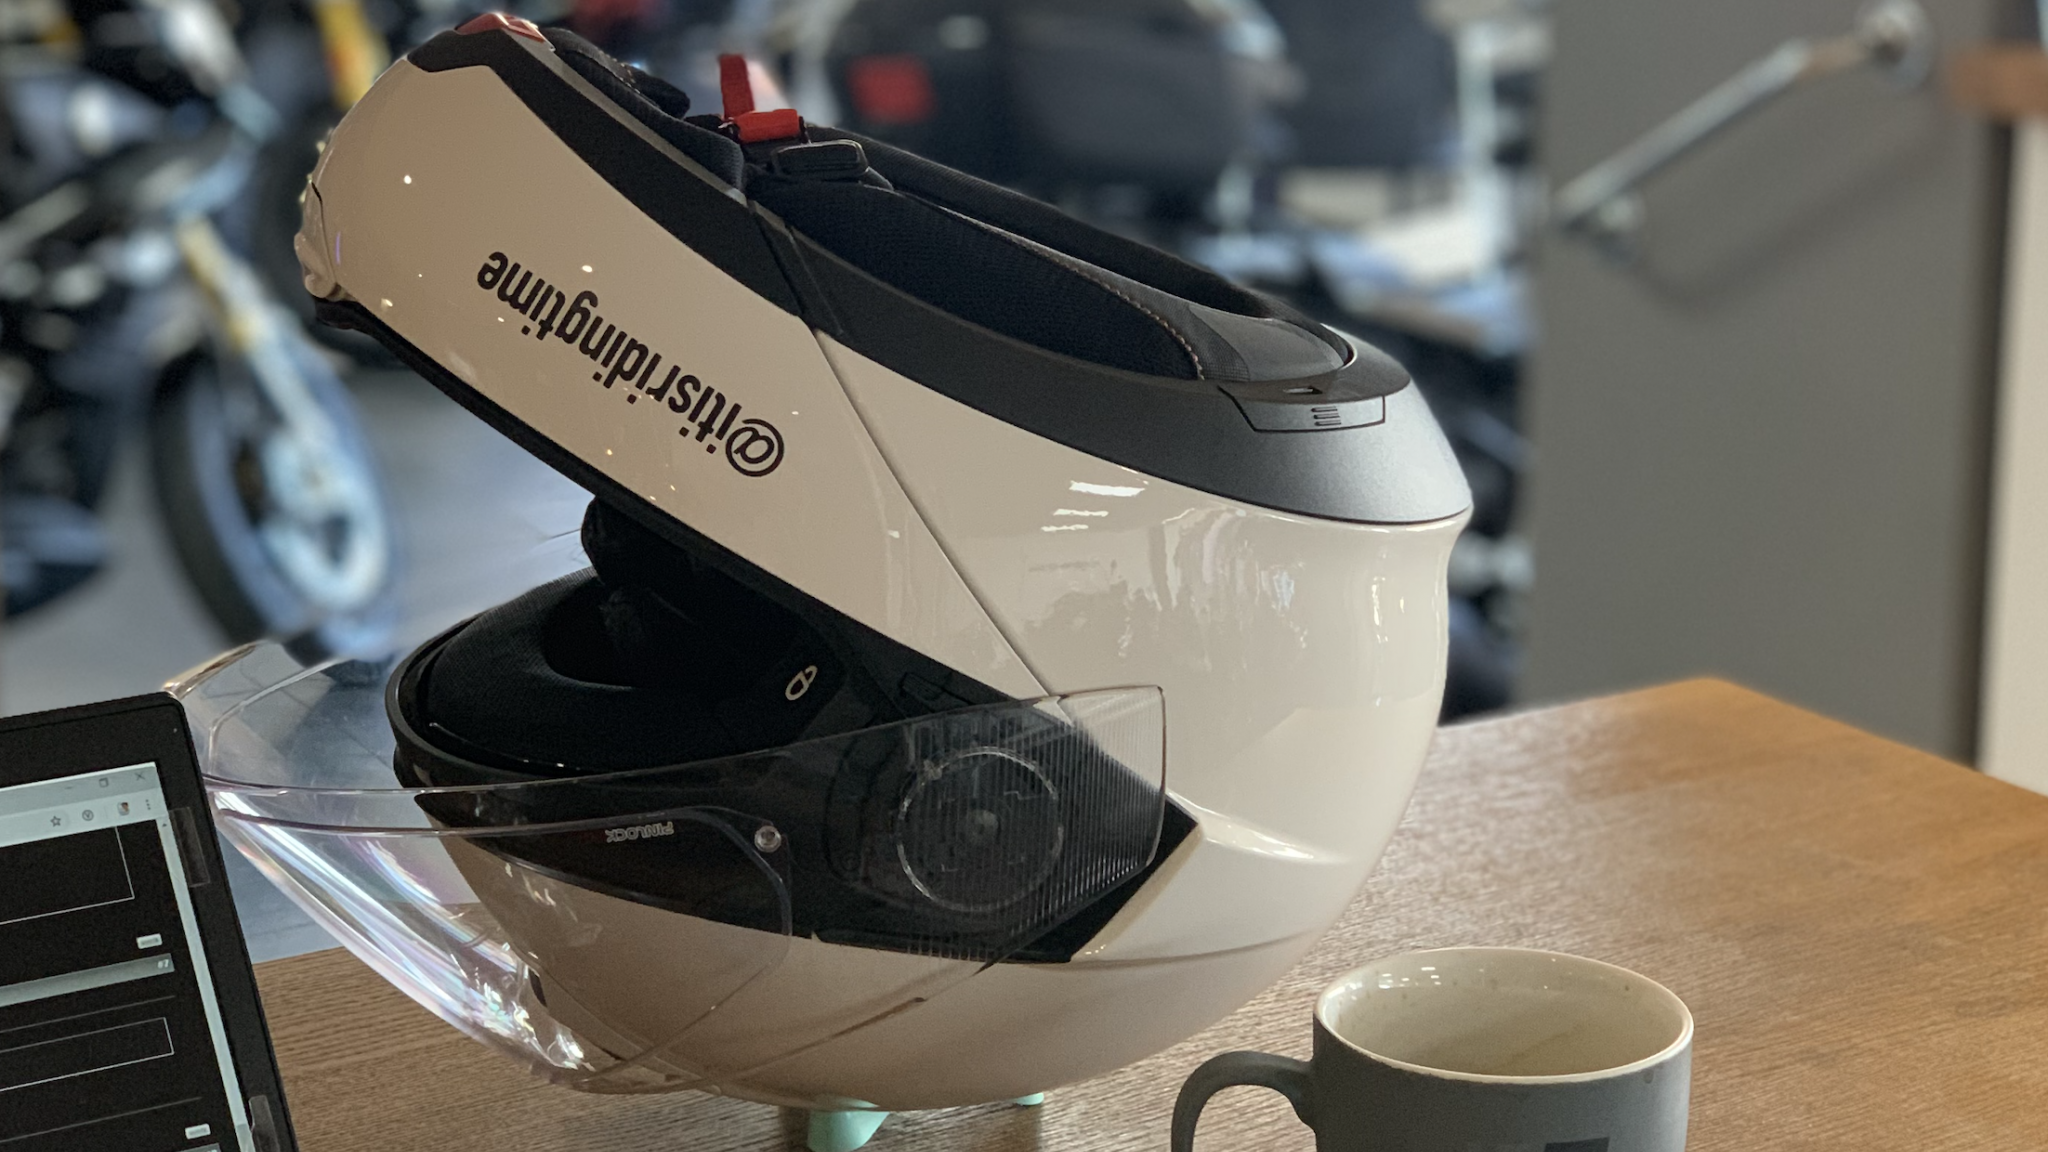 The Frog Helmet in use while having a coffee